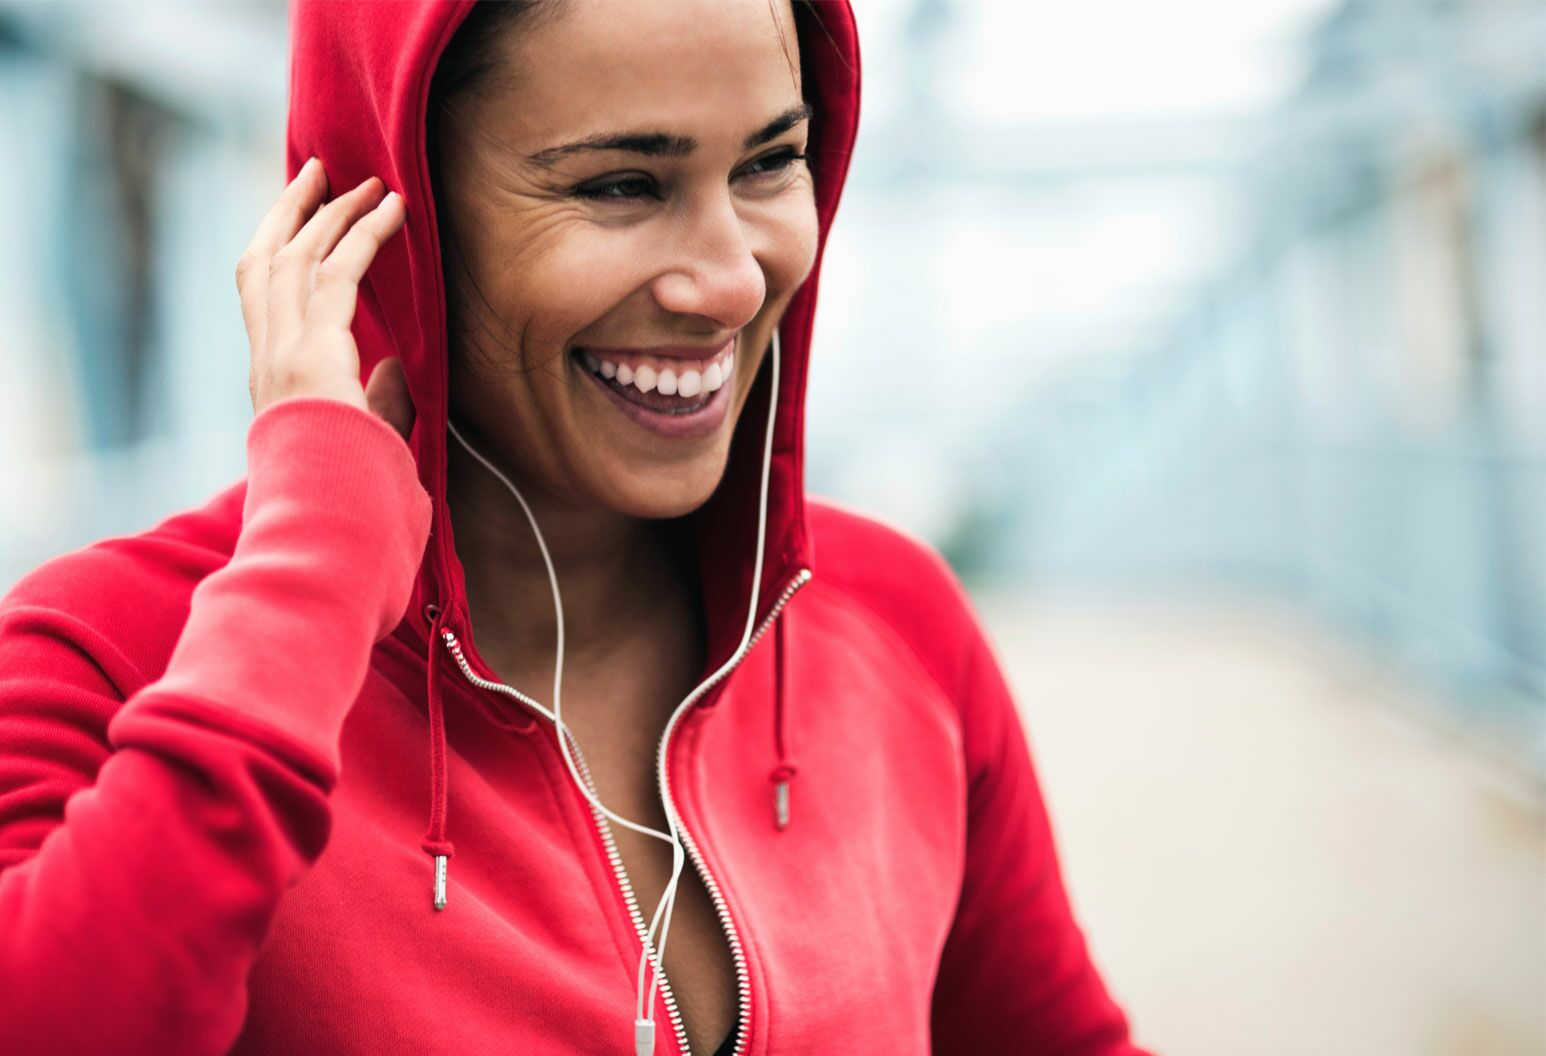 Women in red sweater hoodie enjoying time exercising and listening to music.